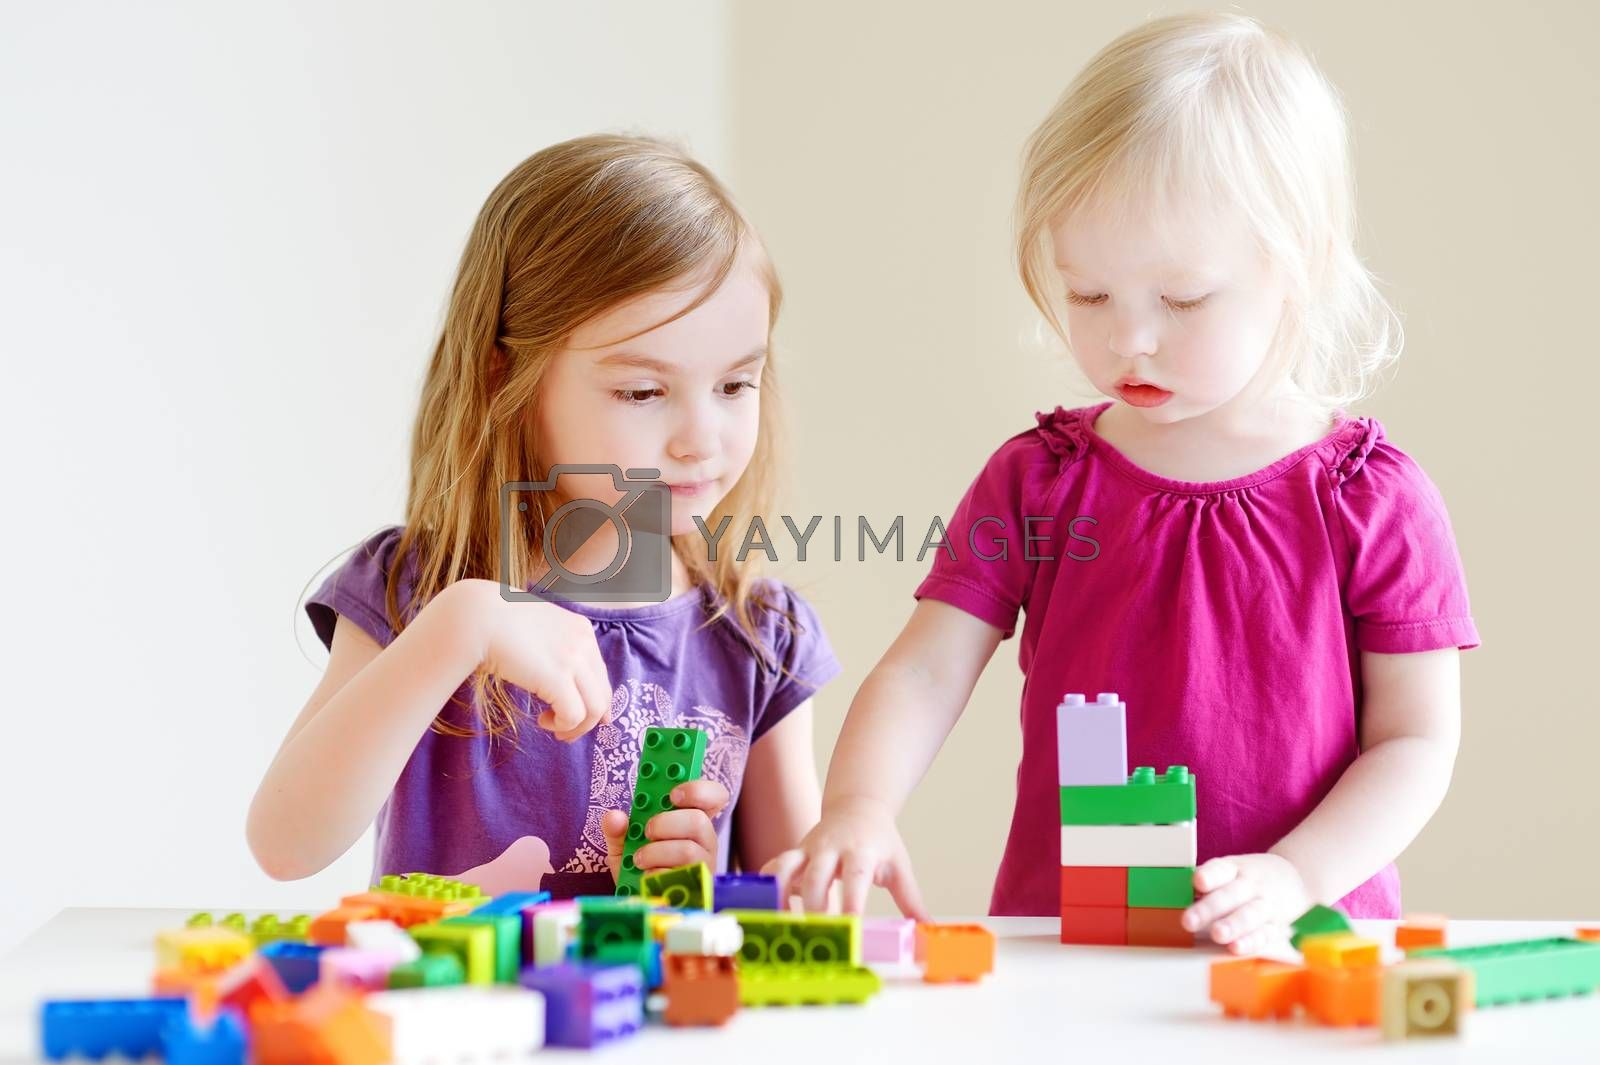 Two cute little sisters playing with colorful plastic blocks at home